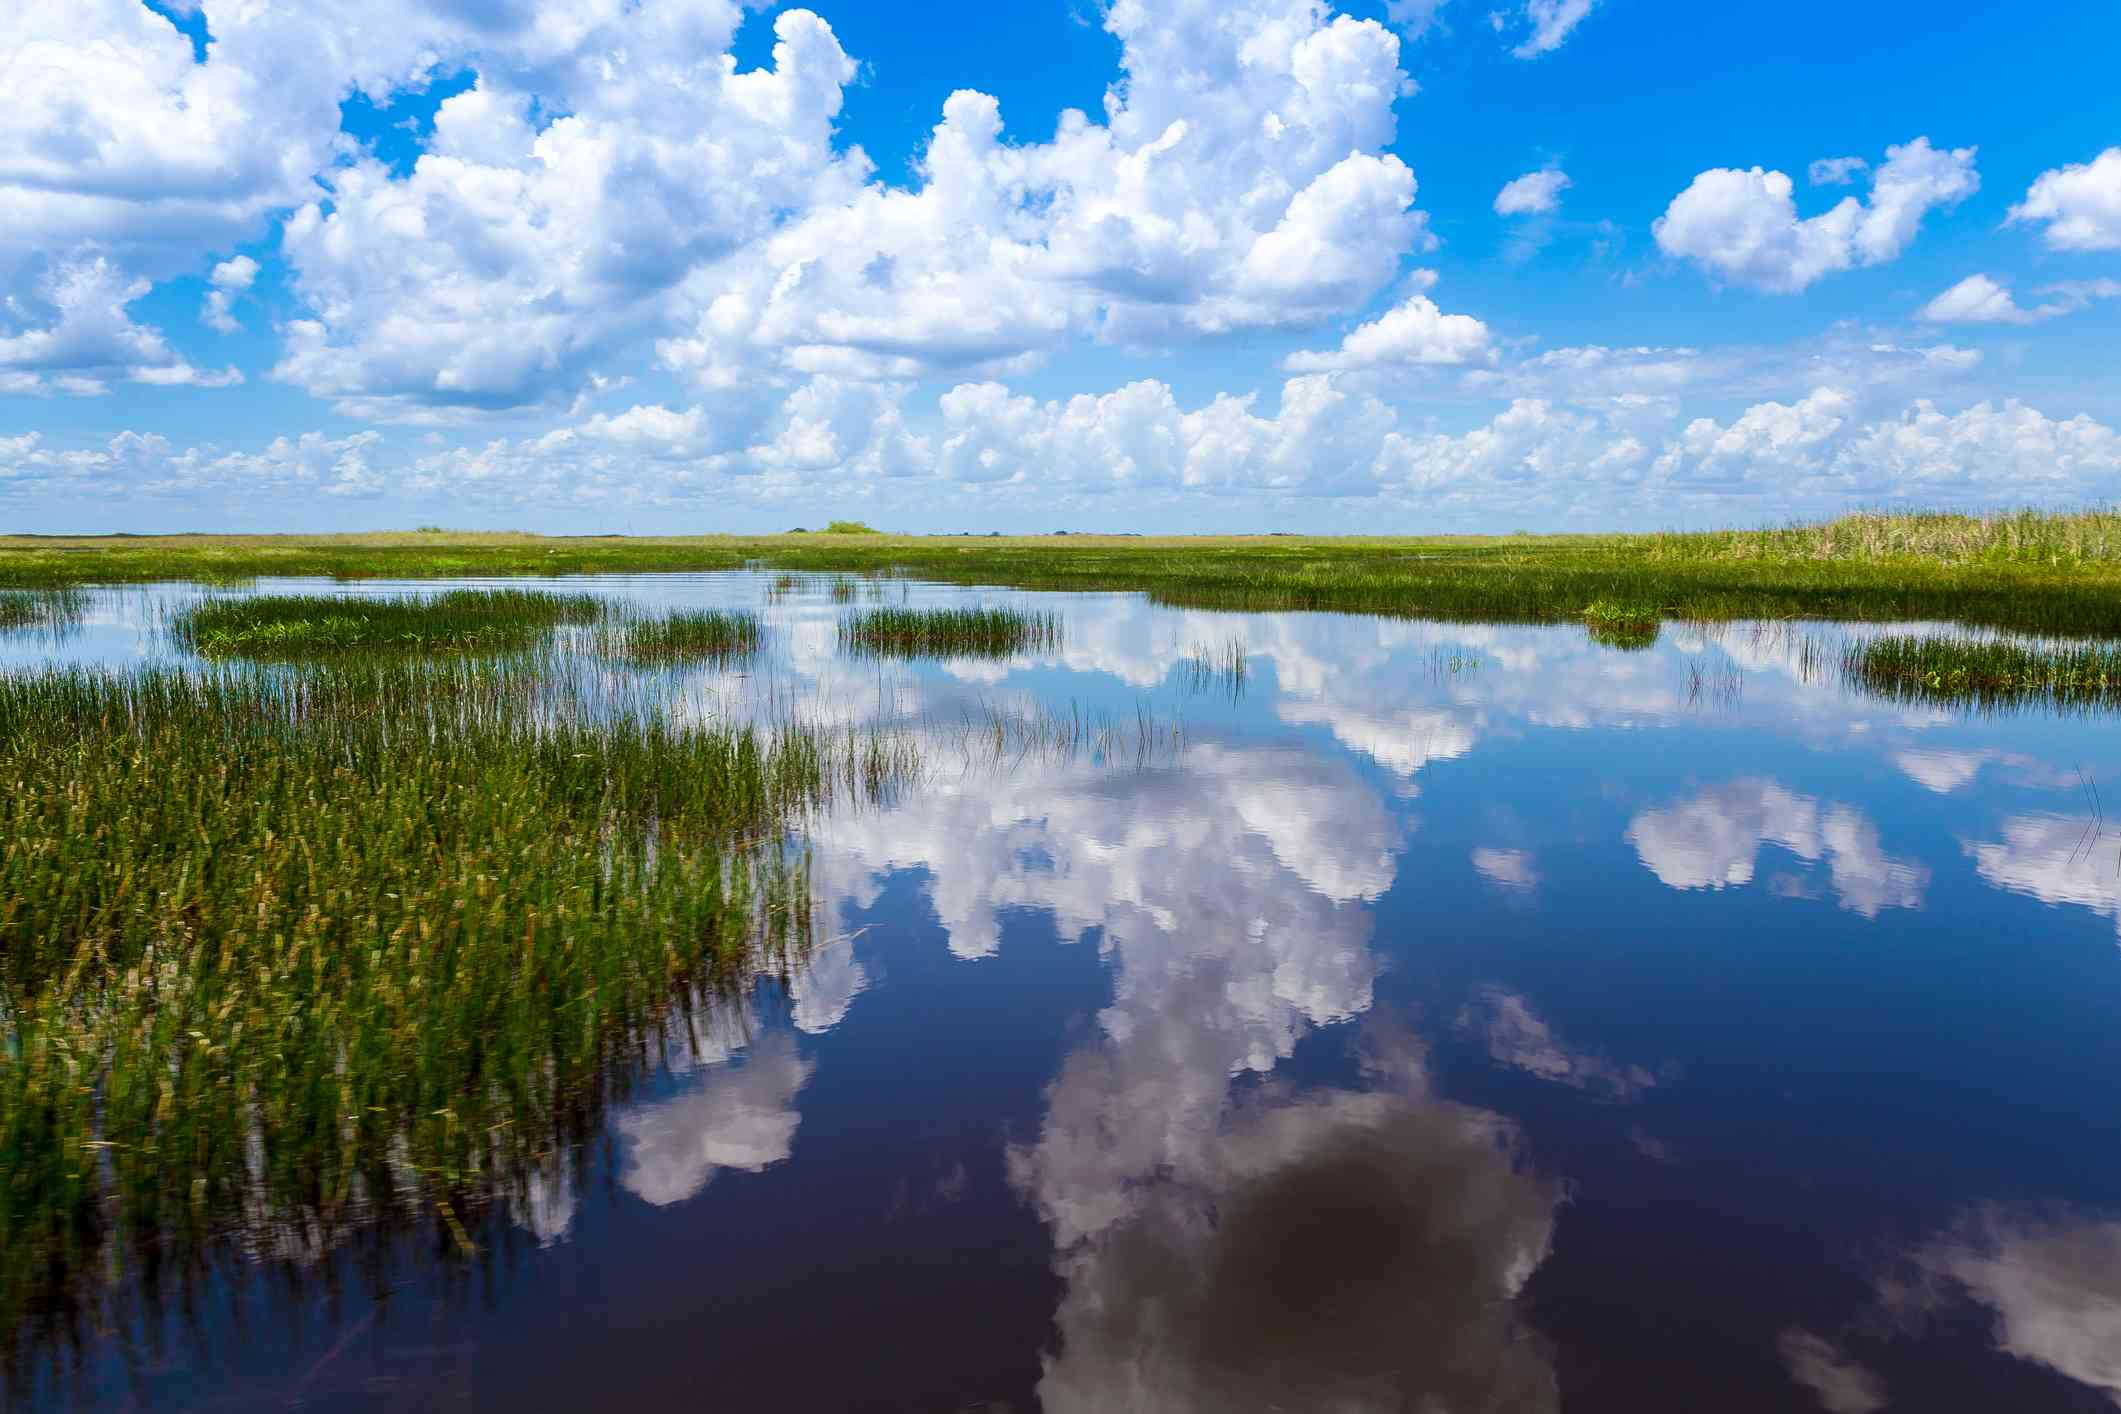 A marsh wetland with blue sky full of puffy clouds reflecting onto the water's surface.